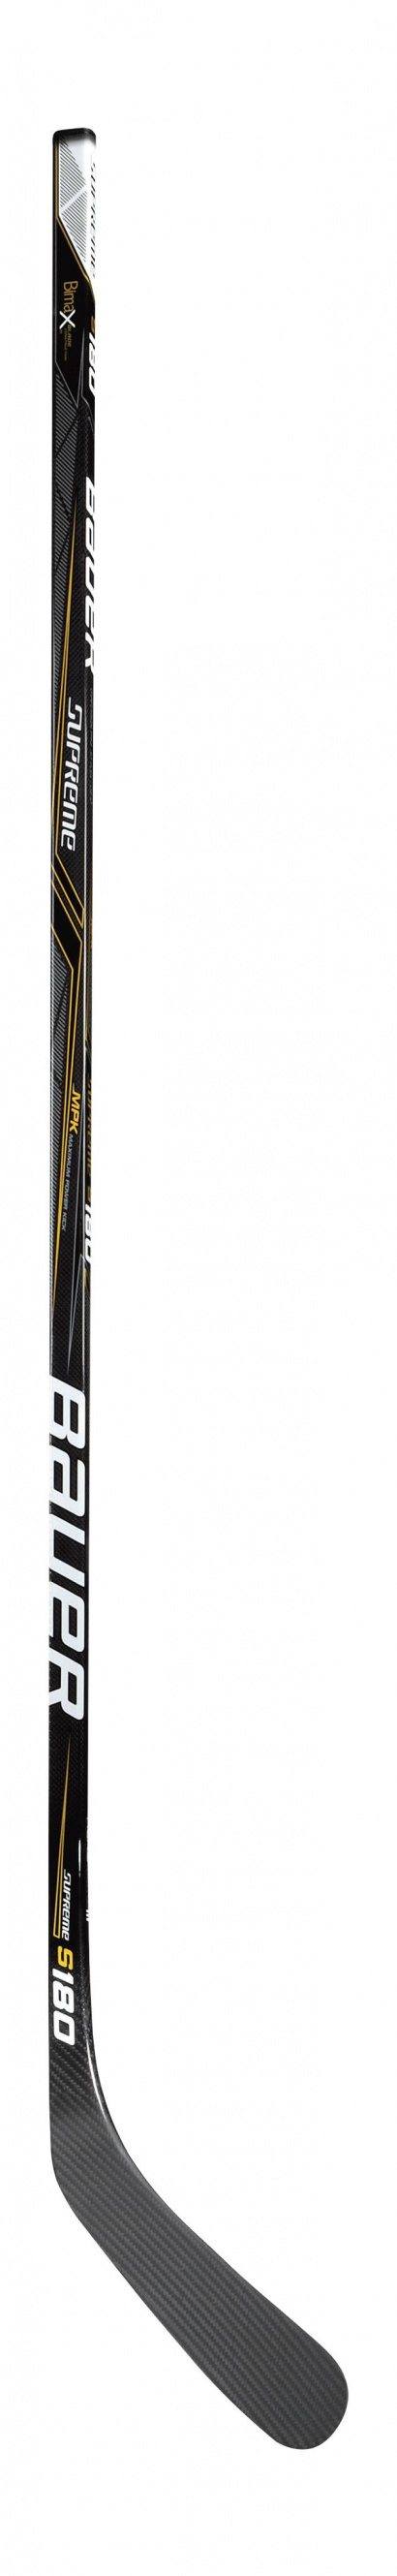 Hockey Stick Bauer SUPREME S180 Grip Sr / Senior 77